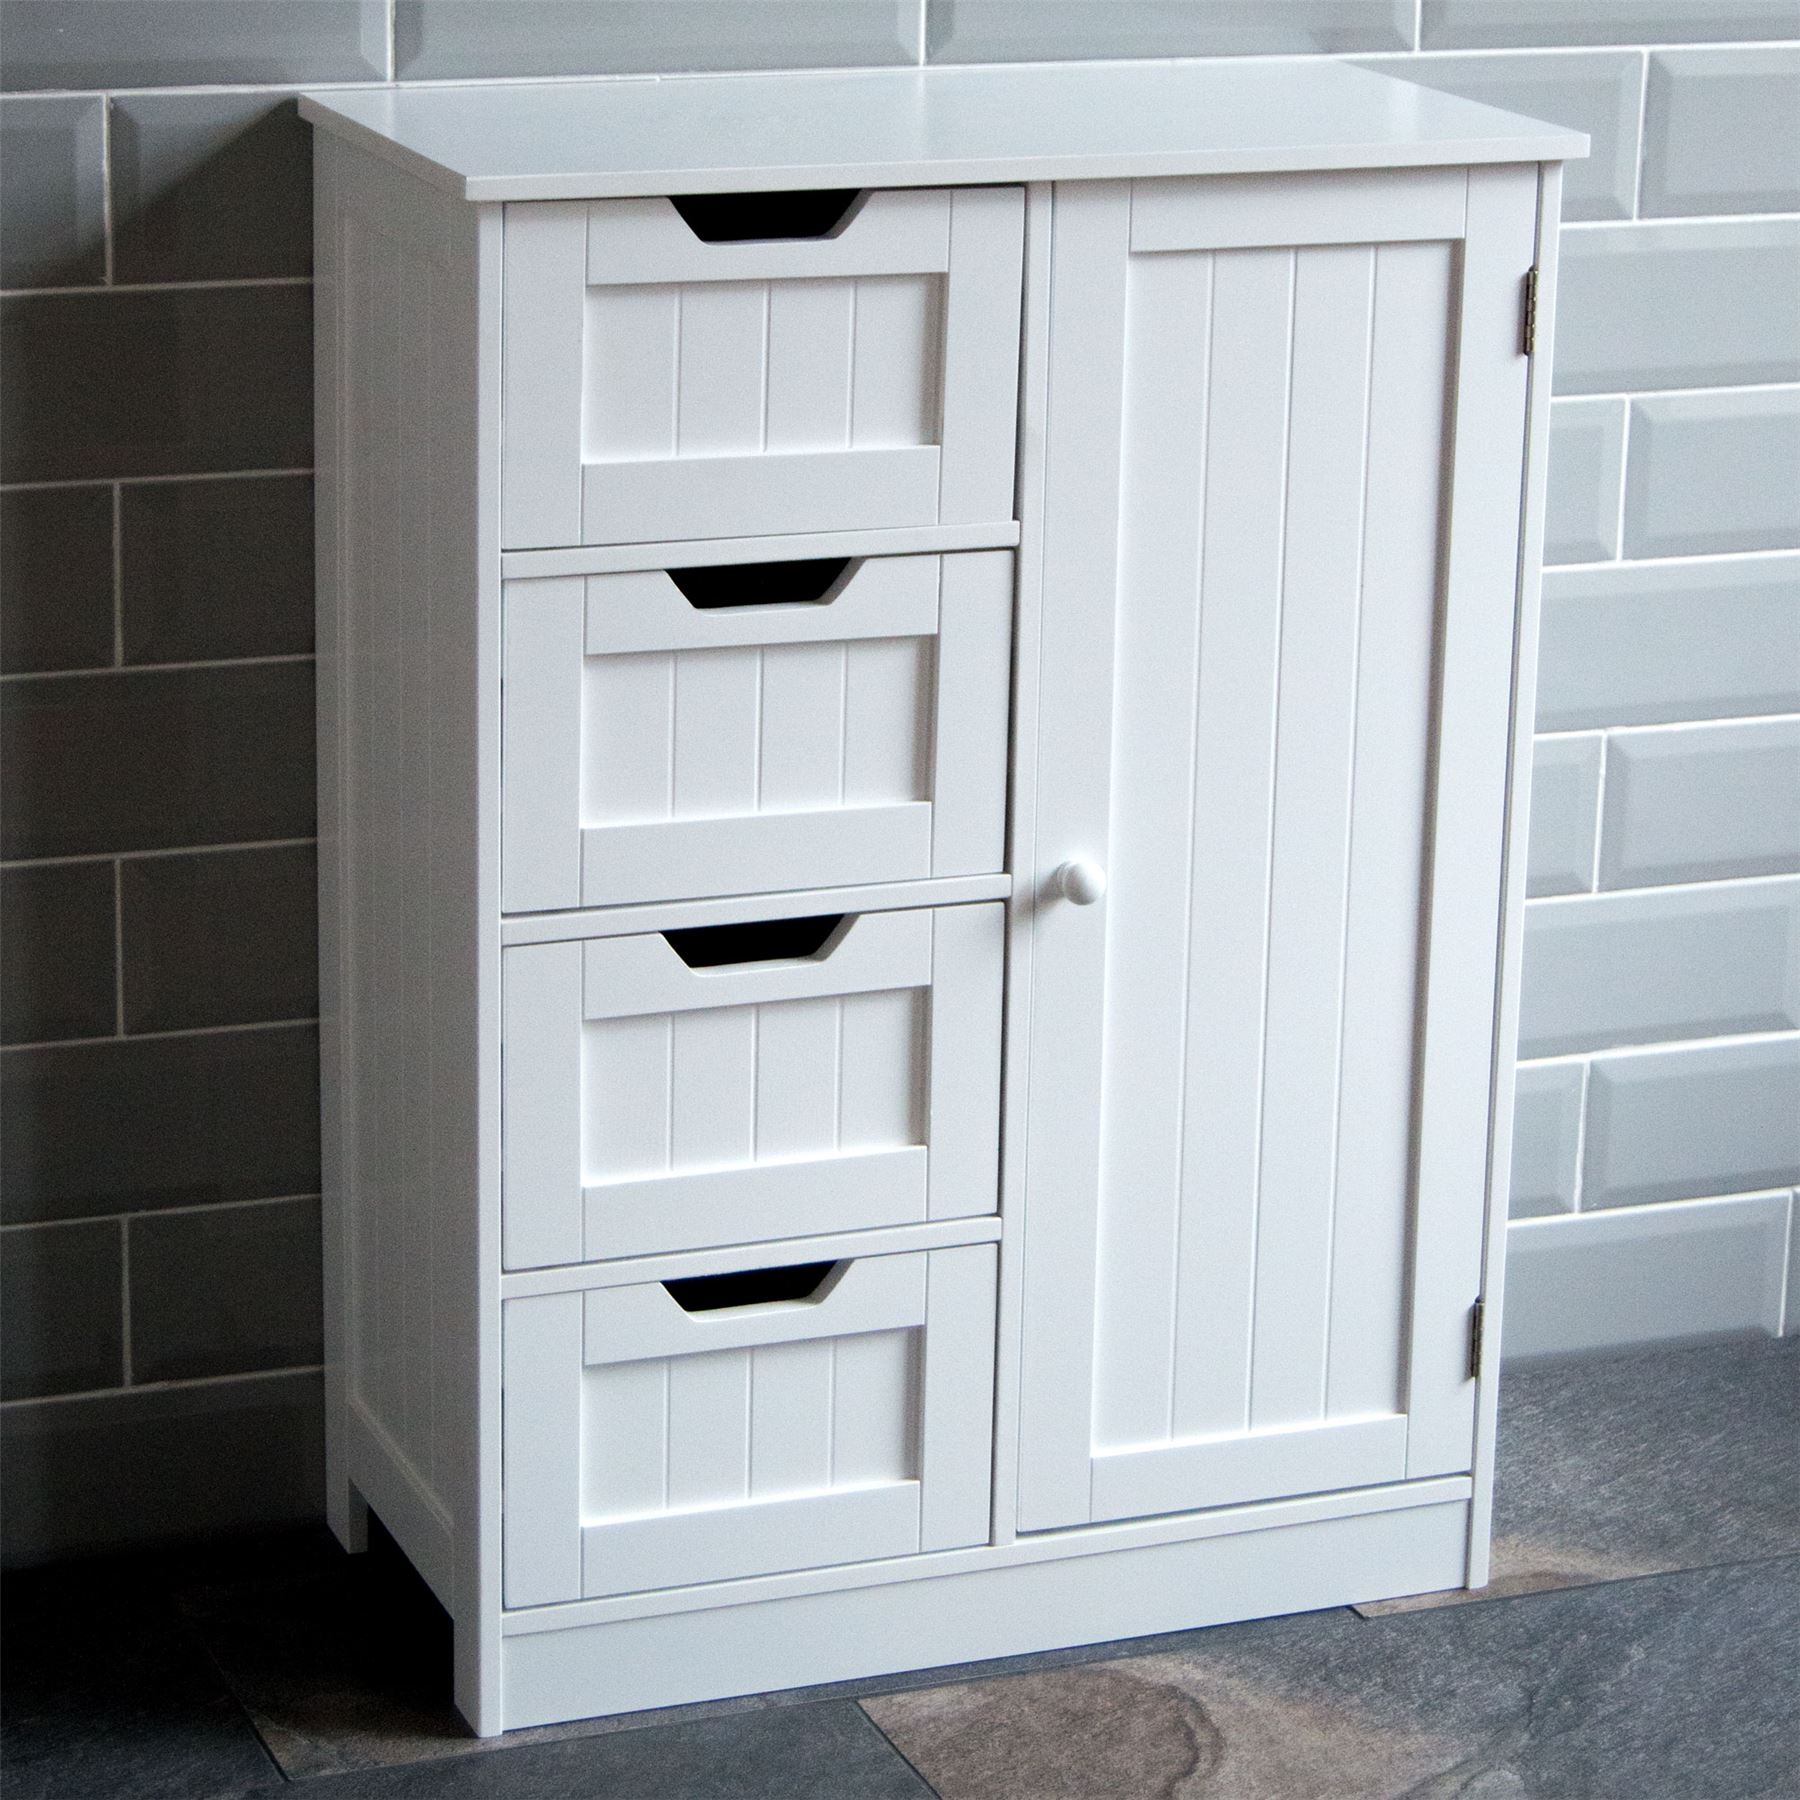 Details About Bathroom 4 Drawer Cabinet Door Storage Cupboard Wooden White Home Discount regarding proportions 1800 X 1800